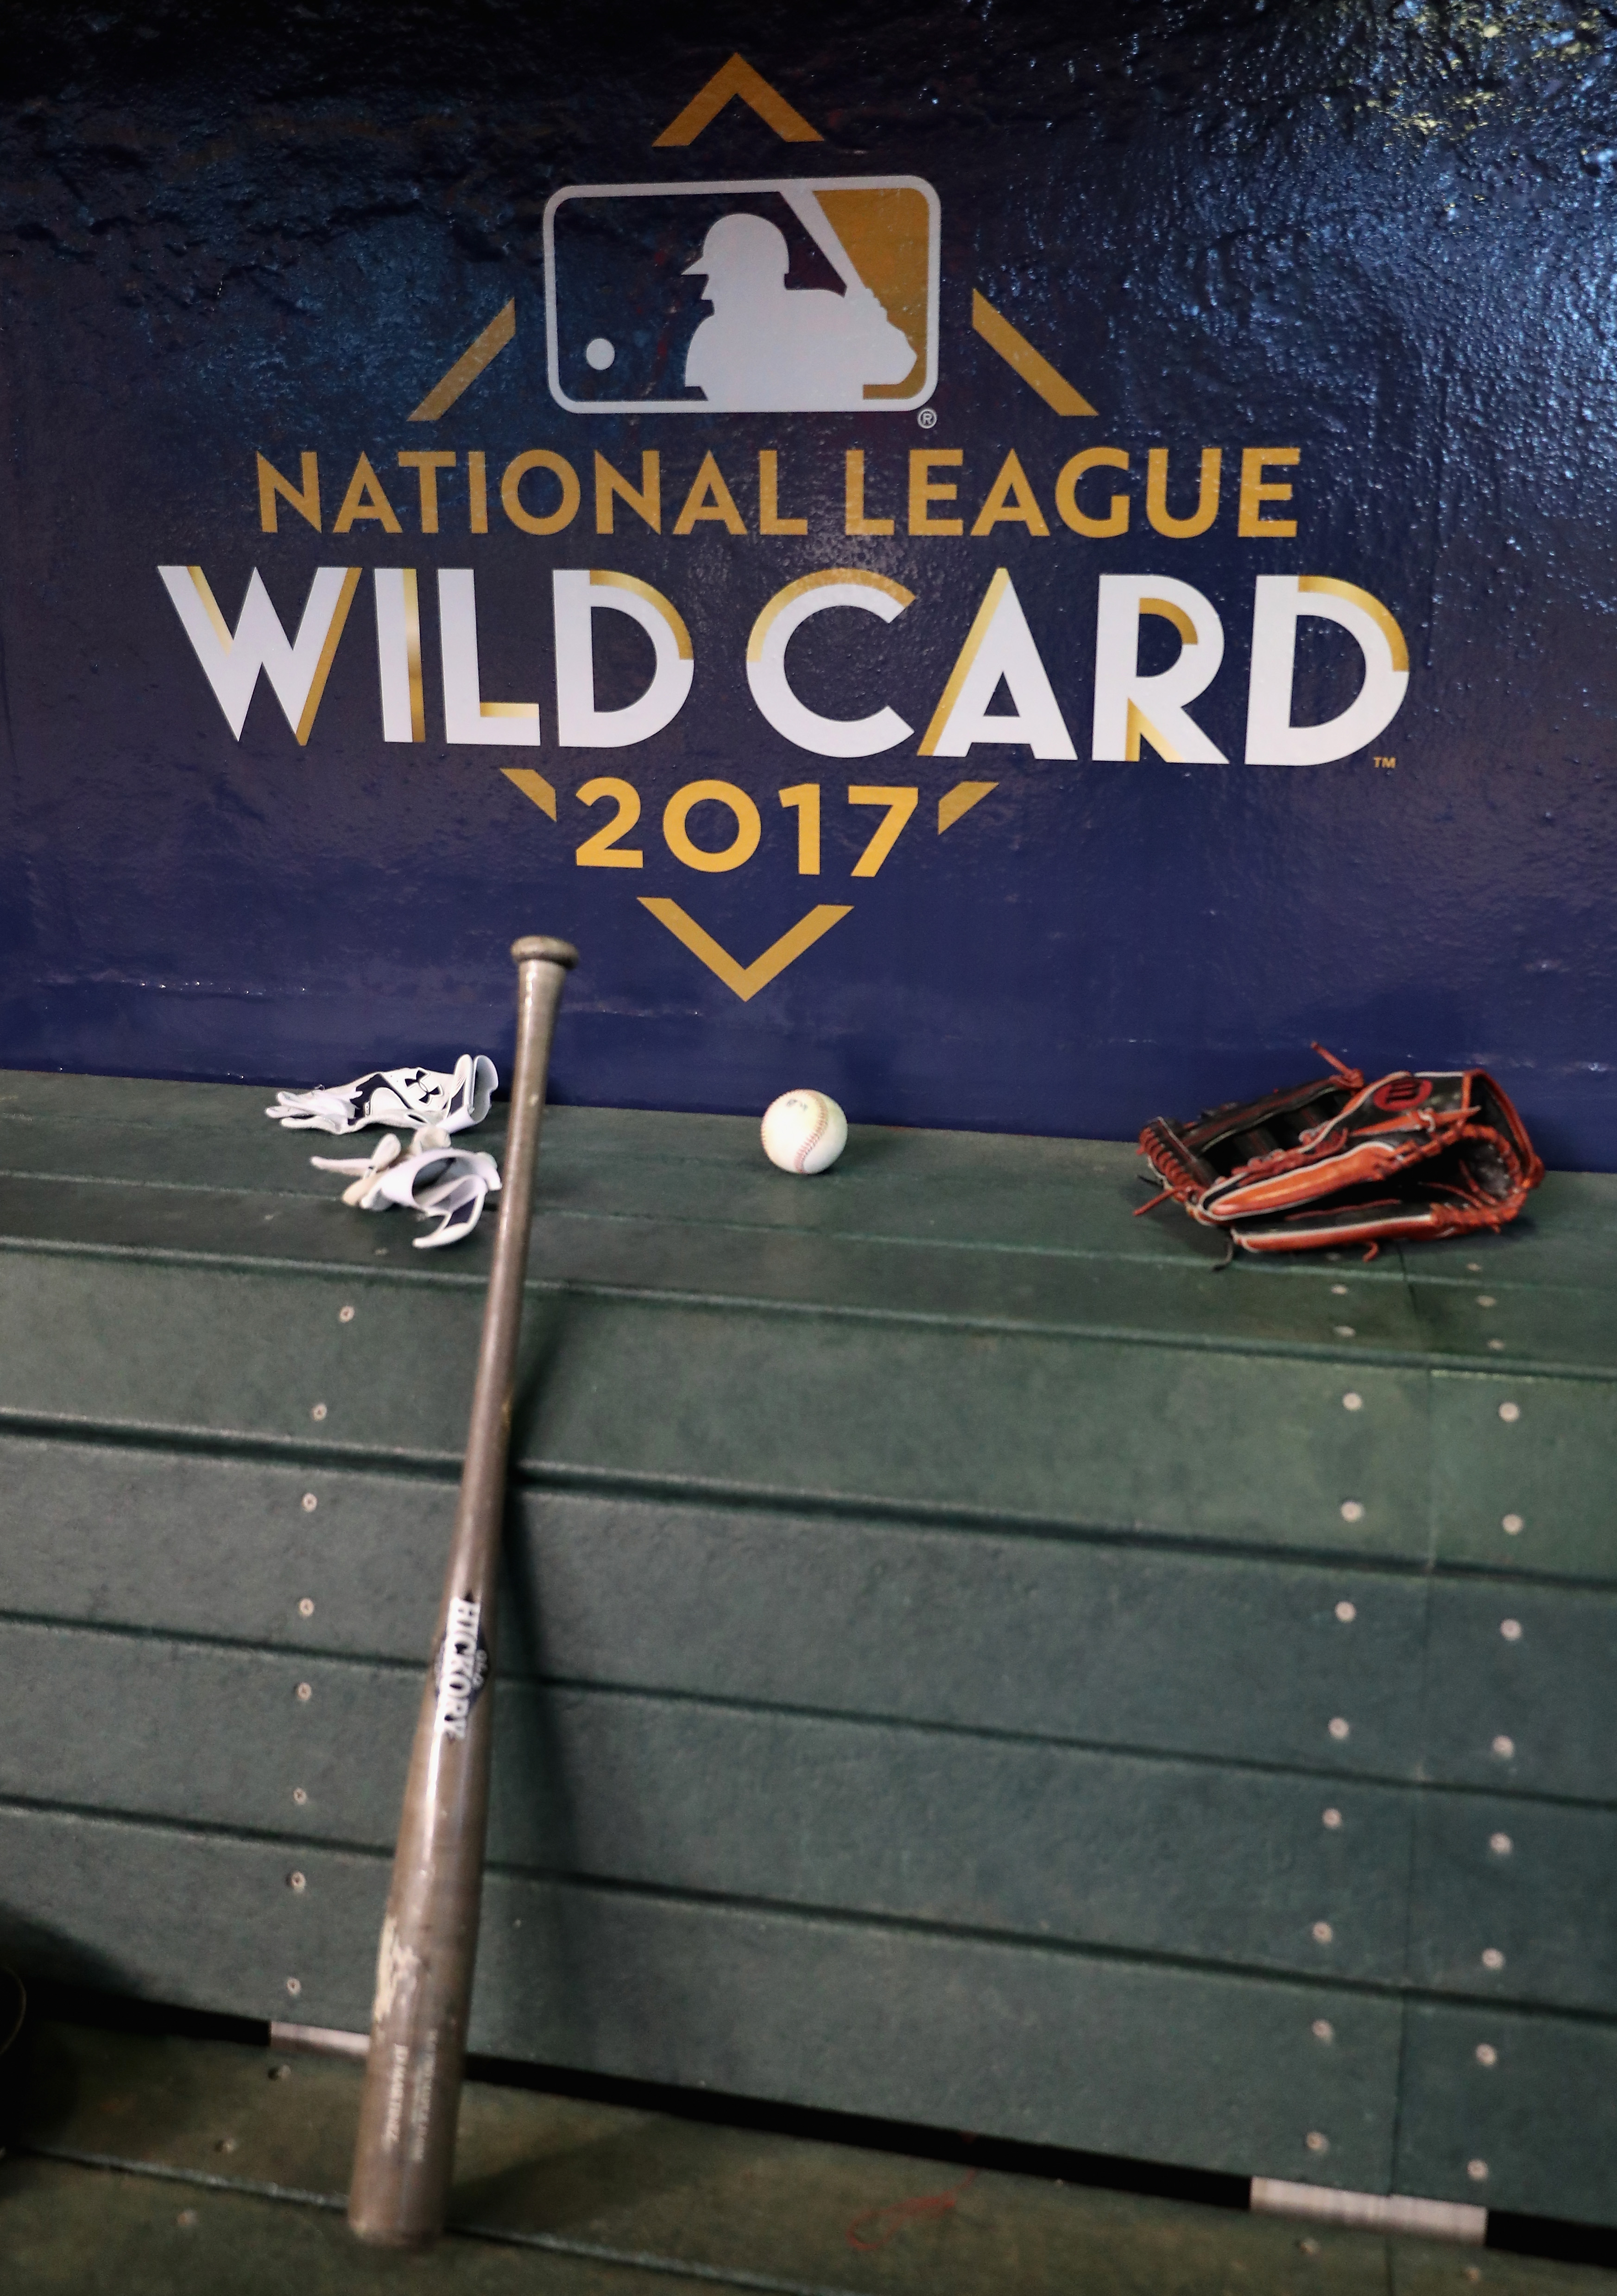 National League Wild Card Game - Colorado Rockies v Arizona Diamondbacks